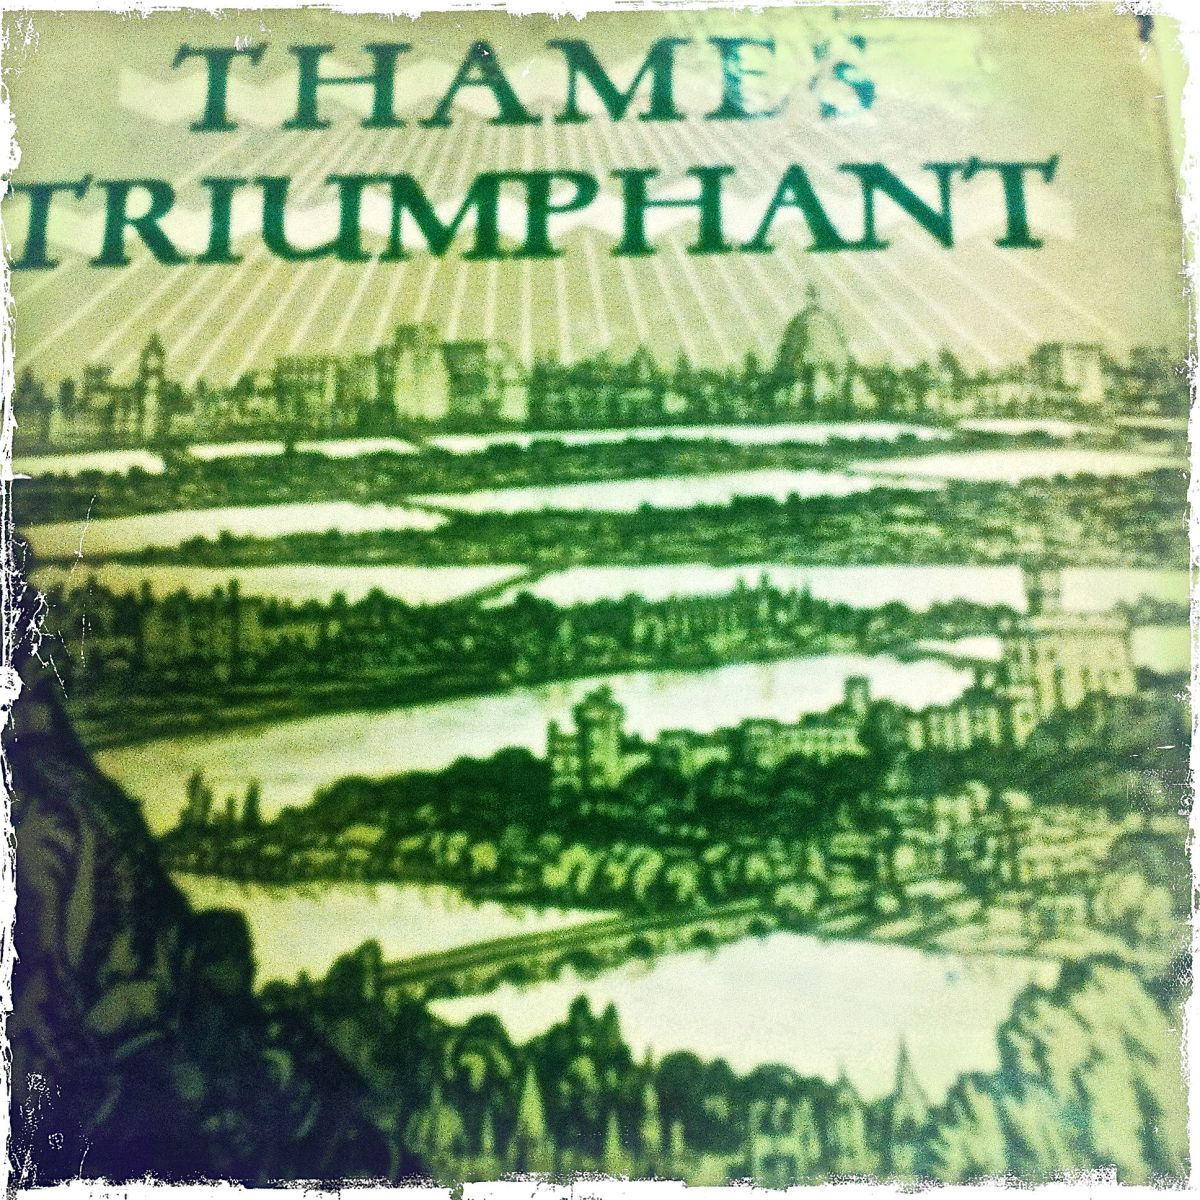 Thames Triumphant – The Museum of Thin Objects